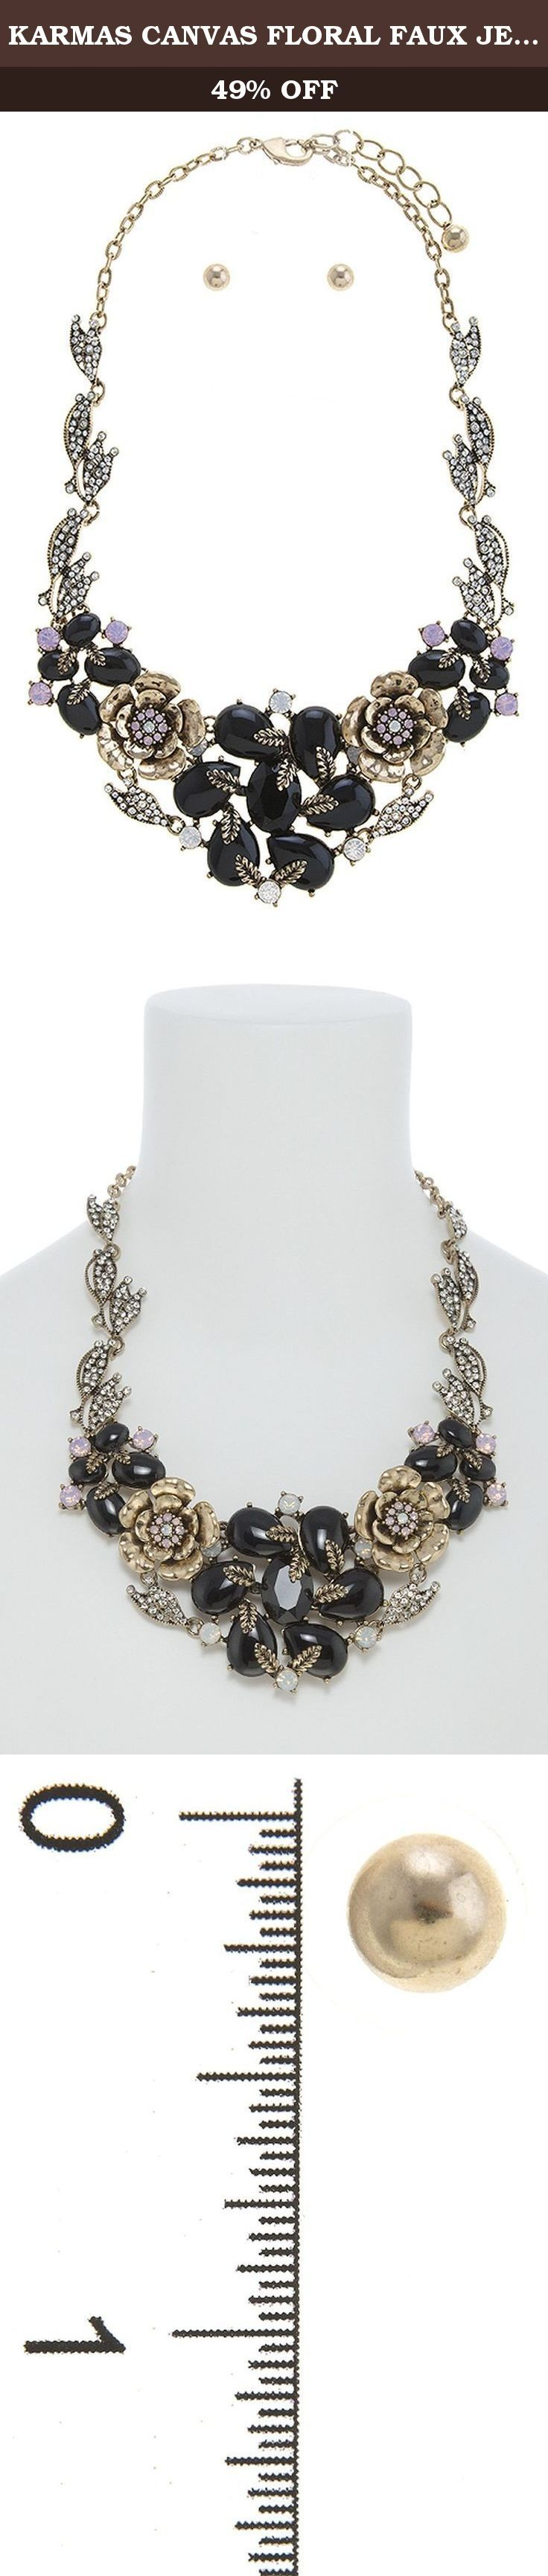 KARMAS CANVAS FLORAL FAUX JEWELED BIB NECKLACE SET. FASHION DESTINATION PRESENTS KARMAS CANVAS FLORAL FAUX JEWELED BIB NECKLACE SET. Buy brand-name Fashion Jewelry for everyday discount prices with Fashion Destination! Everyday LOW shipping *. Read product reviews on Fashion Necklaces, Fashion Bracelets, Fashion Earrings & more. Shop the Fashion Destination store for a wide selection of rings, bracelets, necklaces, earrings and diamond jewelry. Whether you are searching for men's jewelry...